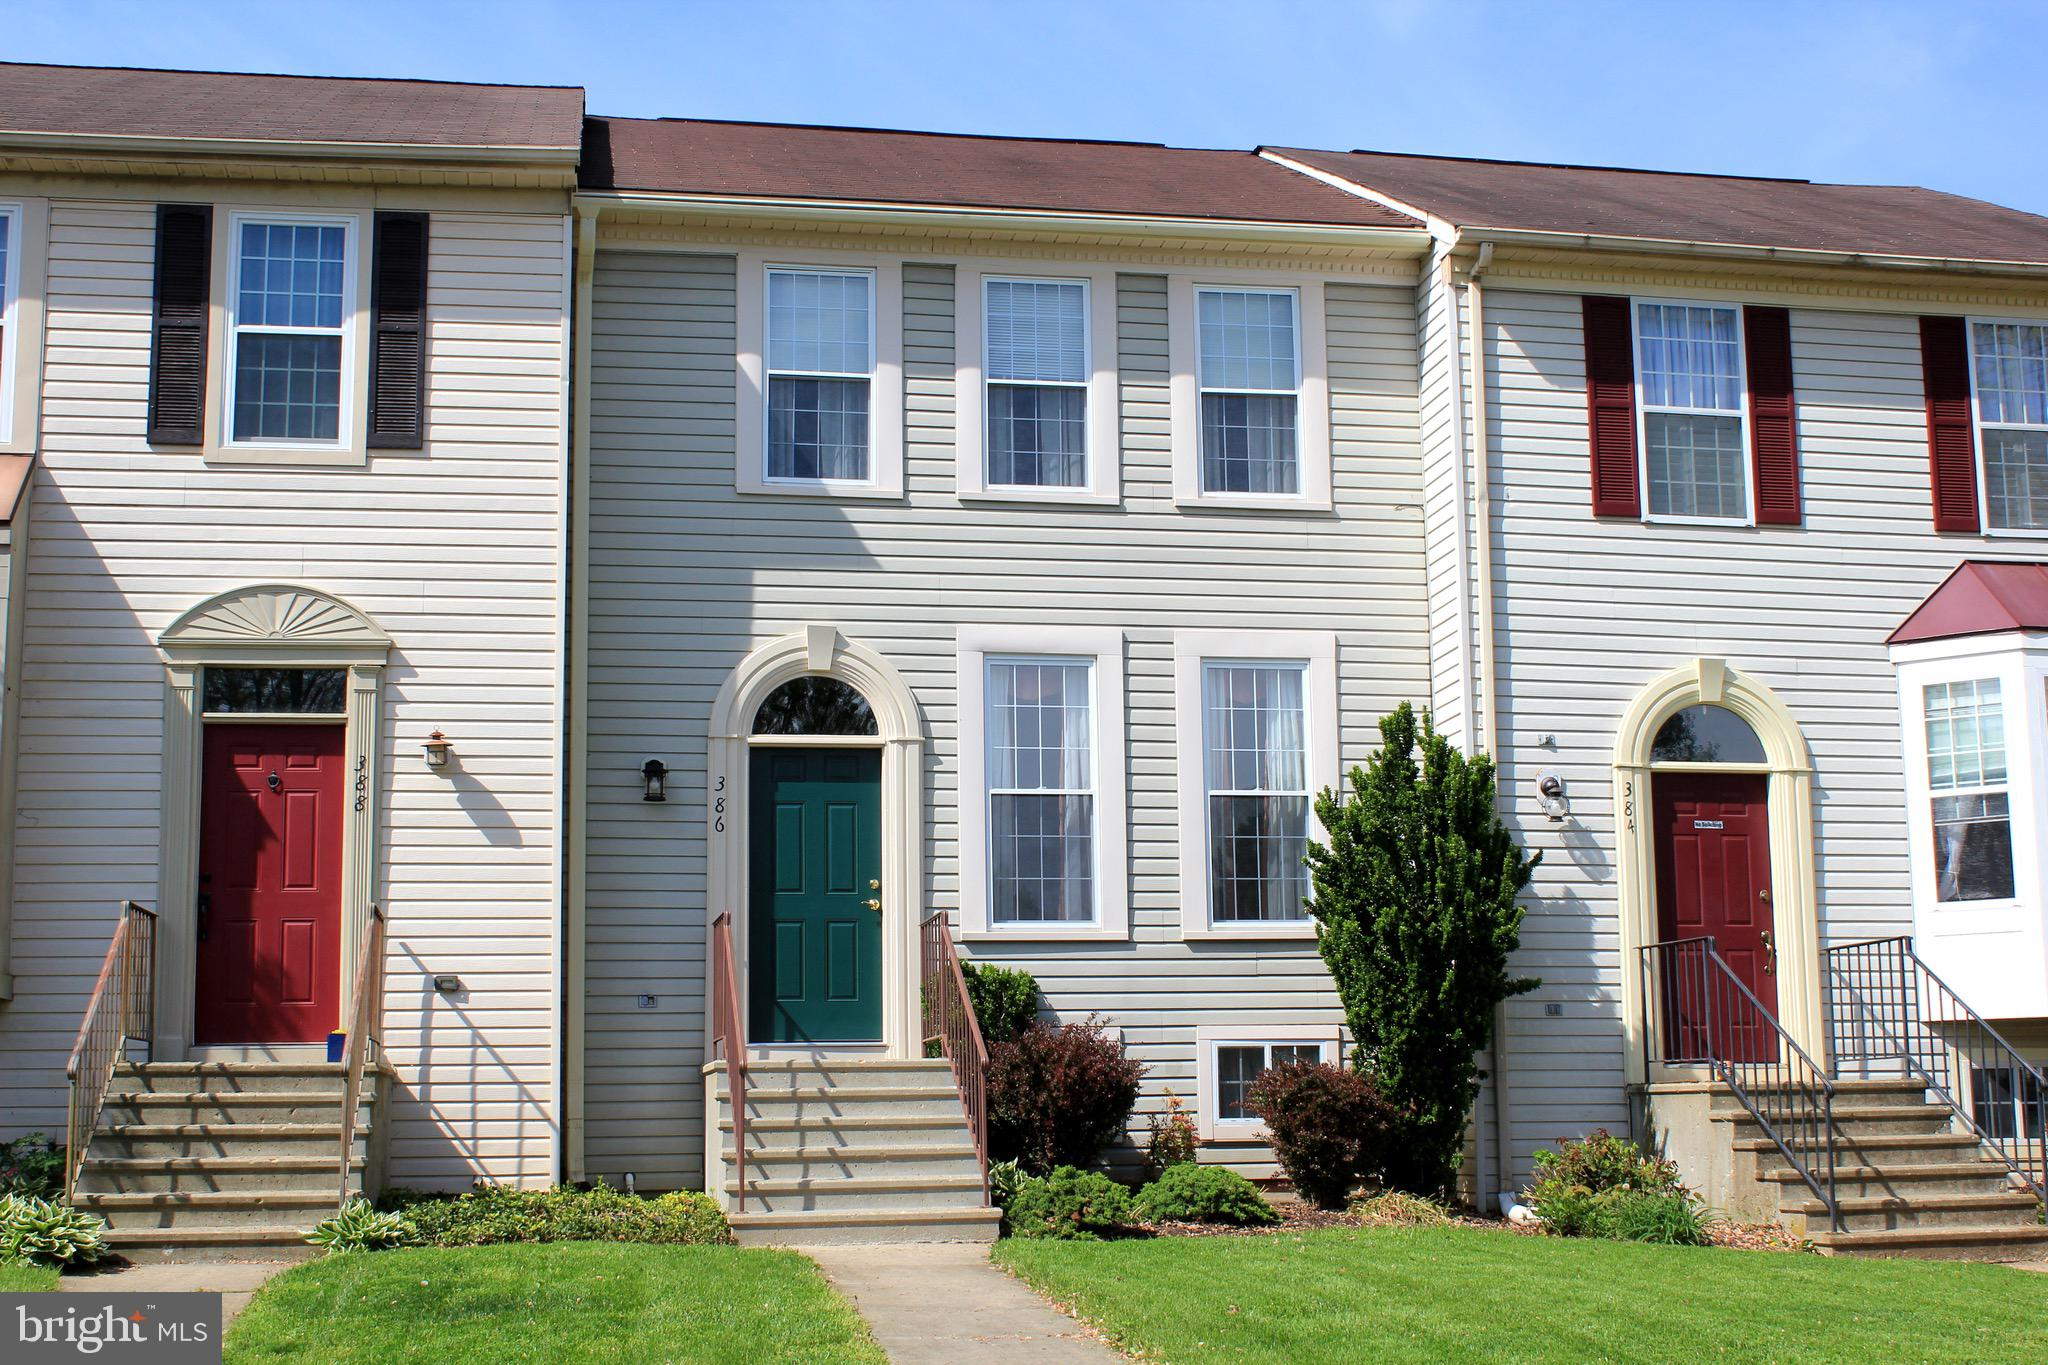 Gorgeous townhouse in Avondale Run! This home offers a remodeled bath, updated kitchen with solid-co